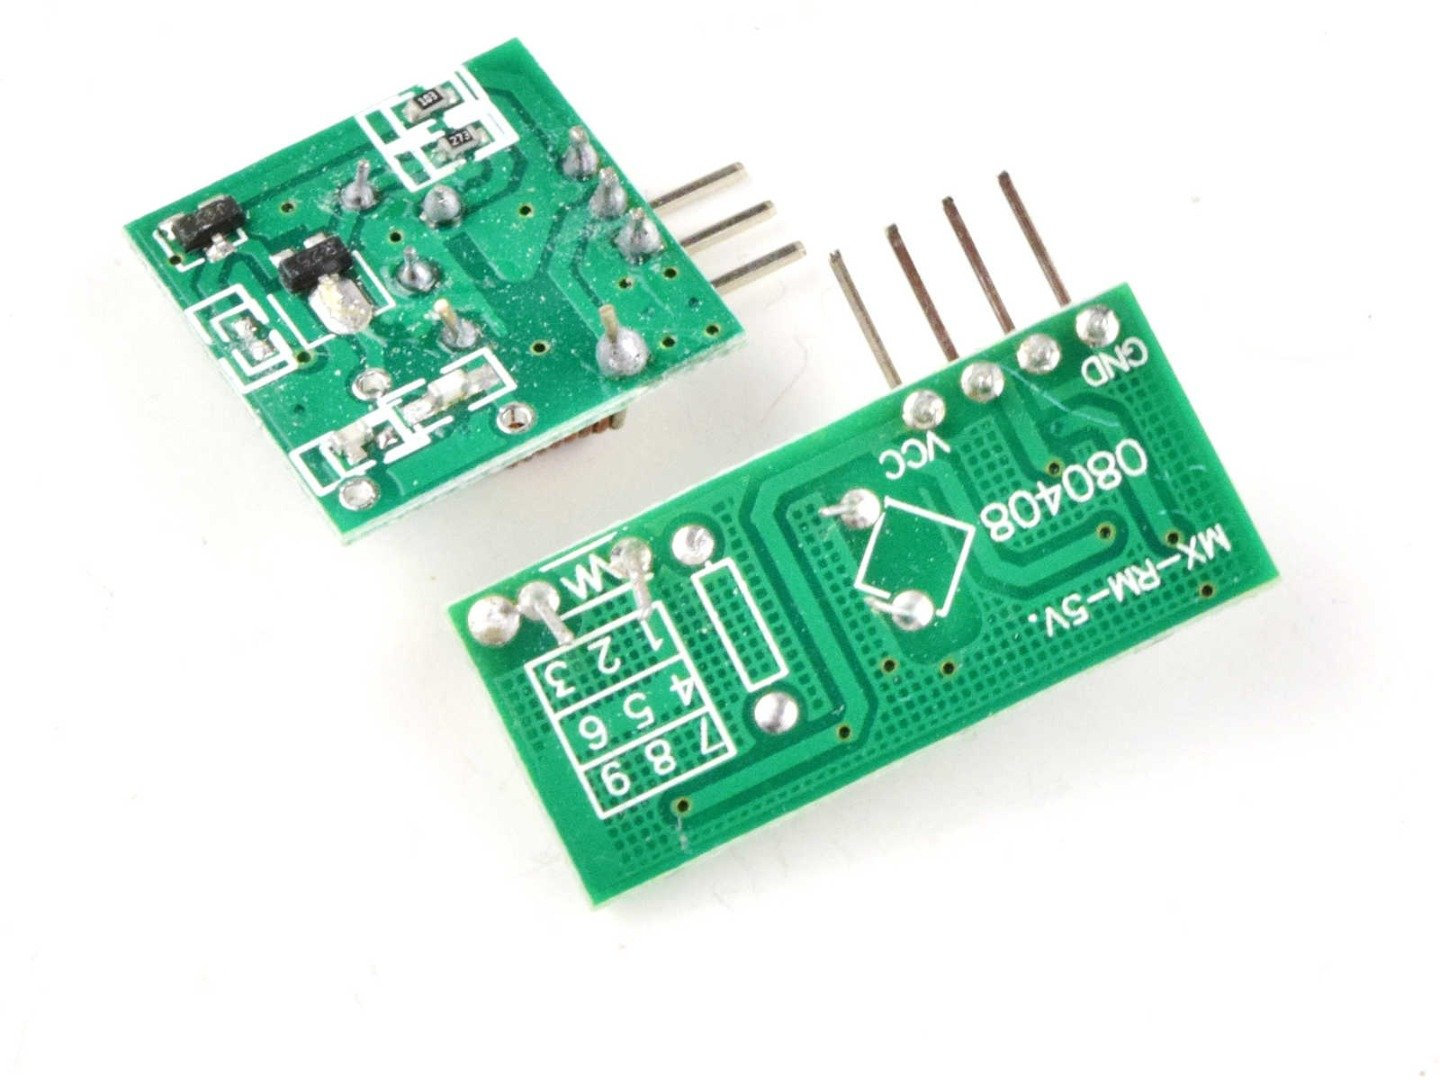 433 MHz Wireless Transmitter Receiver Kit for Micro Controller